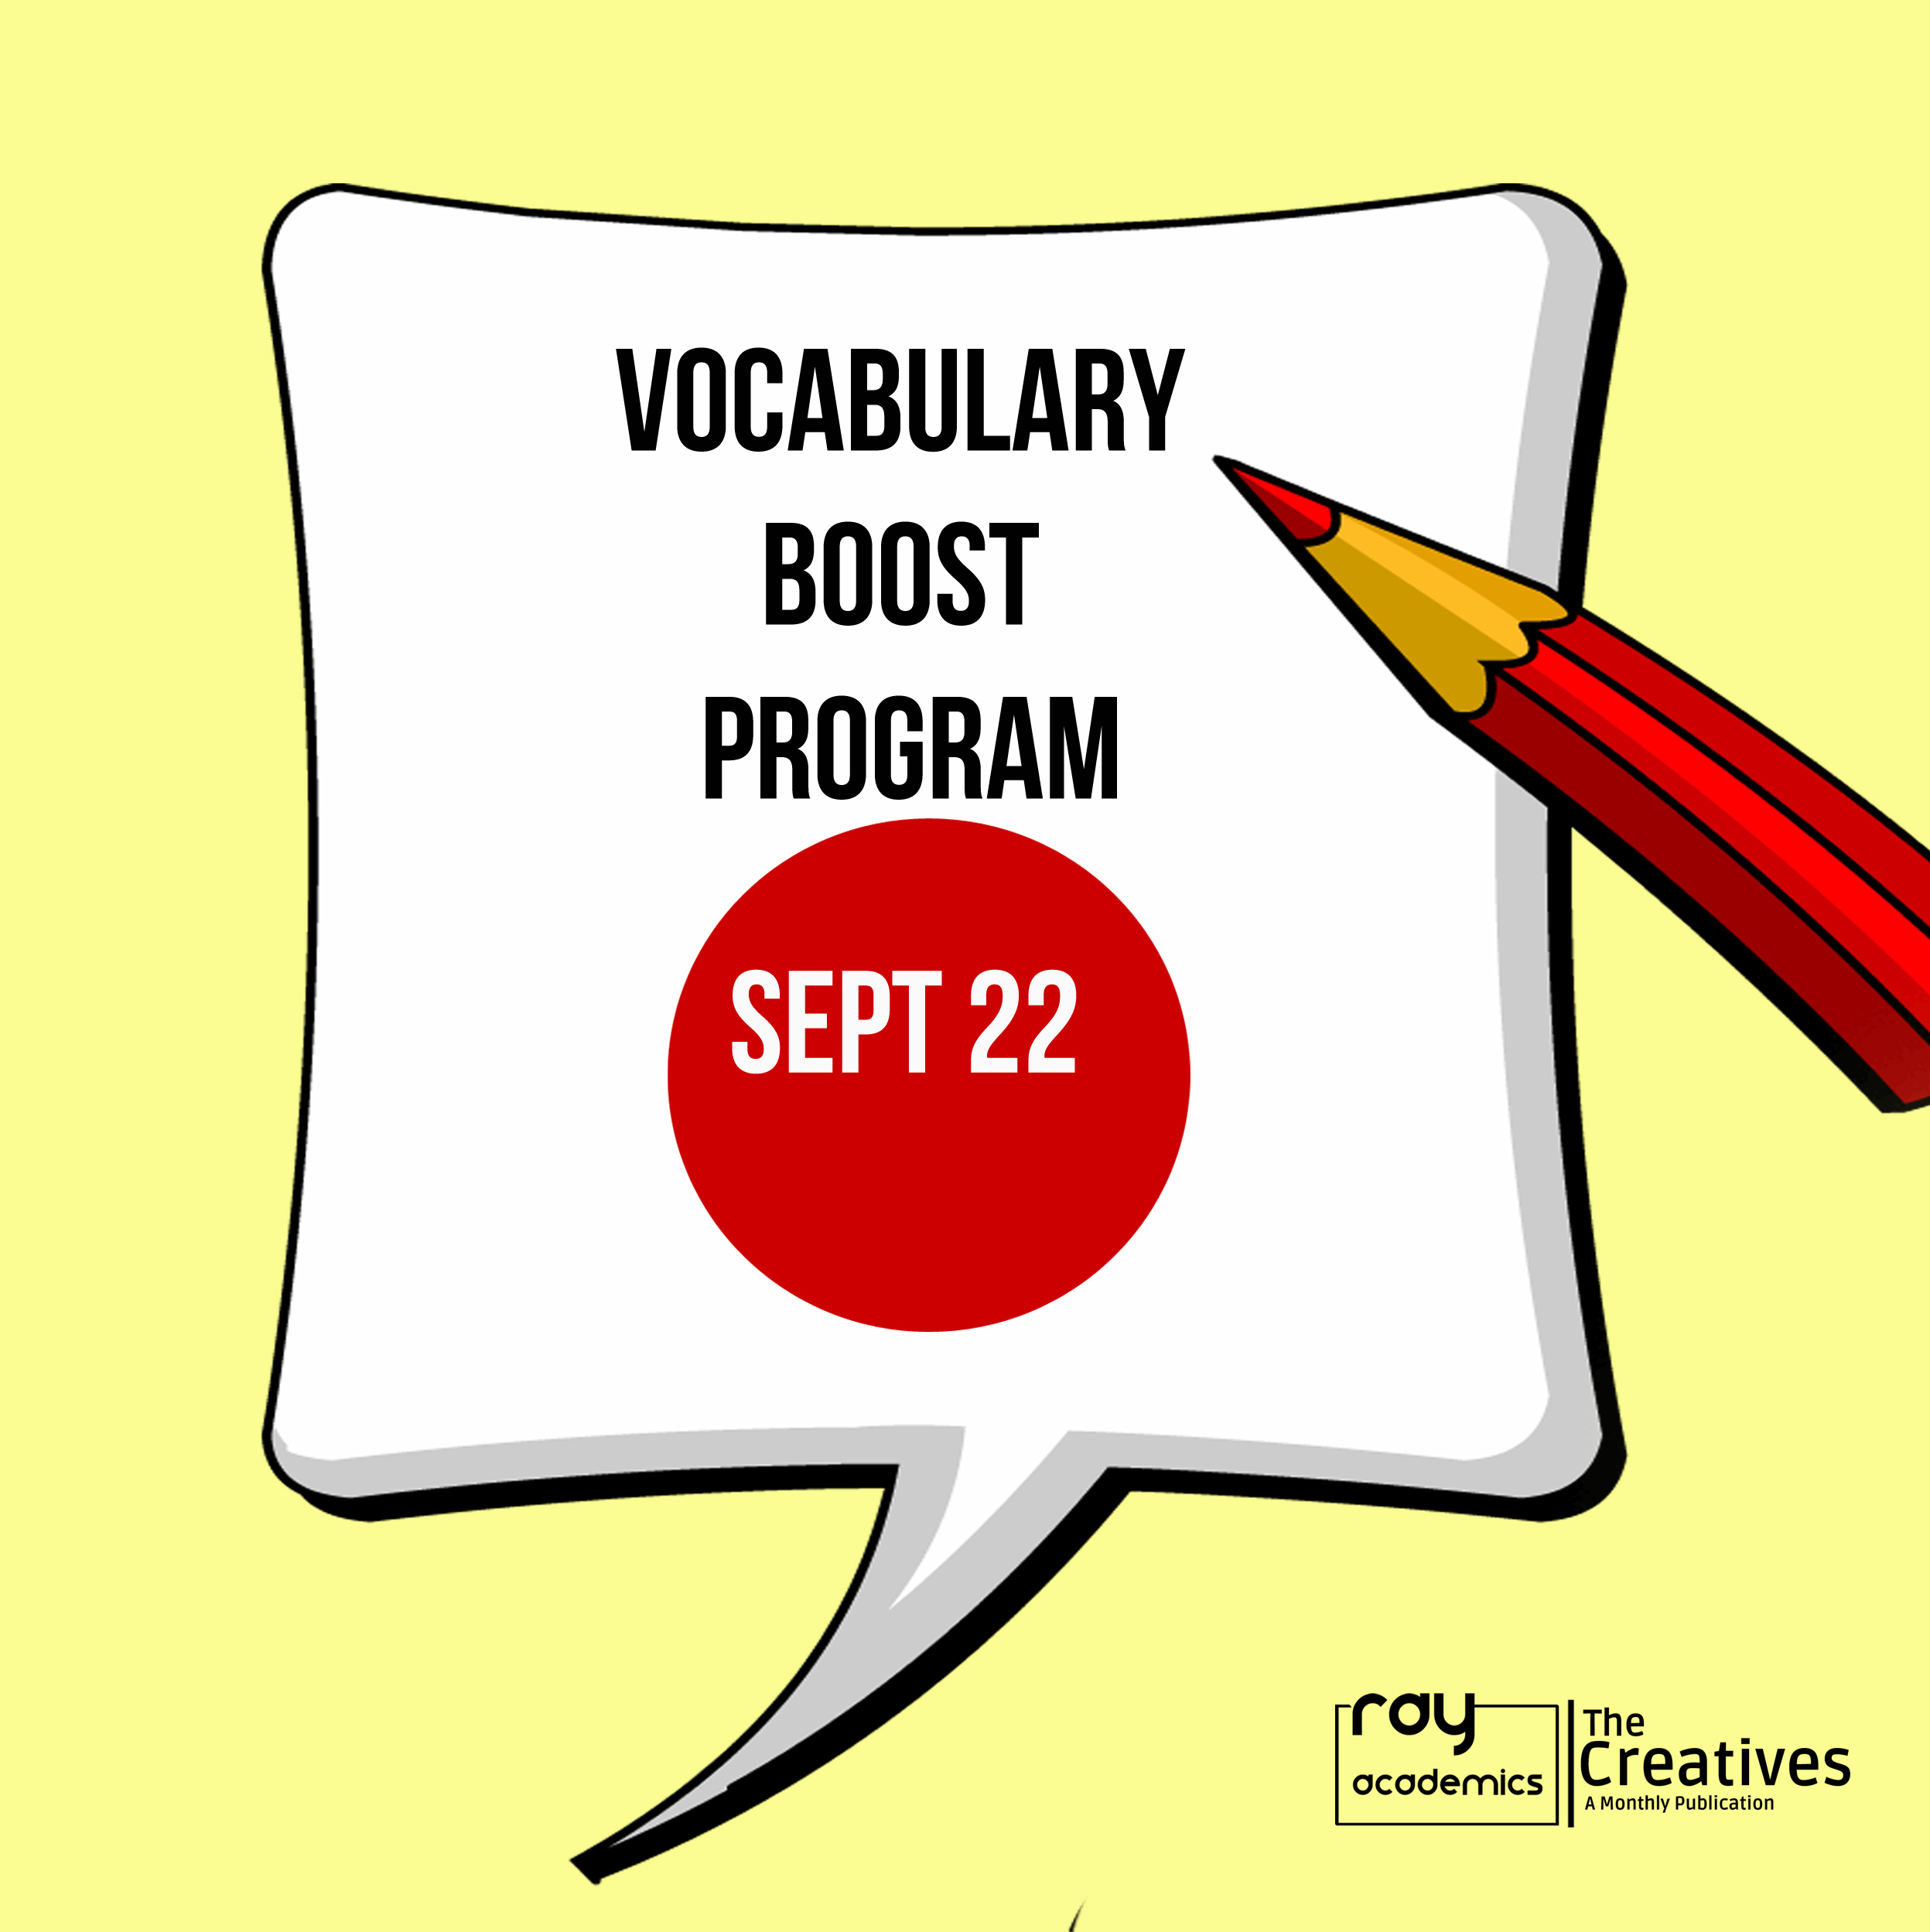 Vocabulary Boost Program.jpg